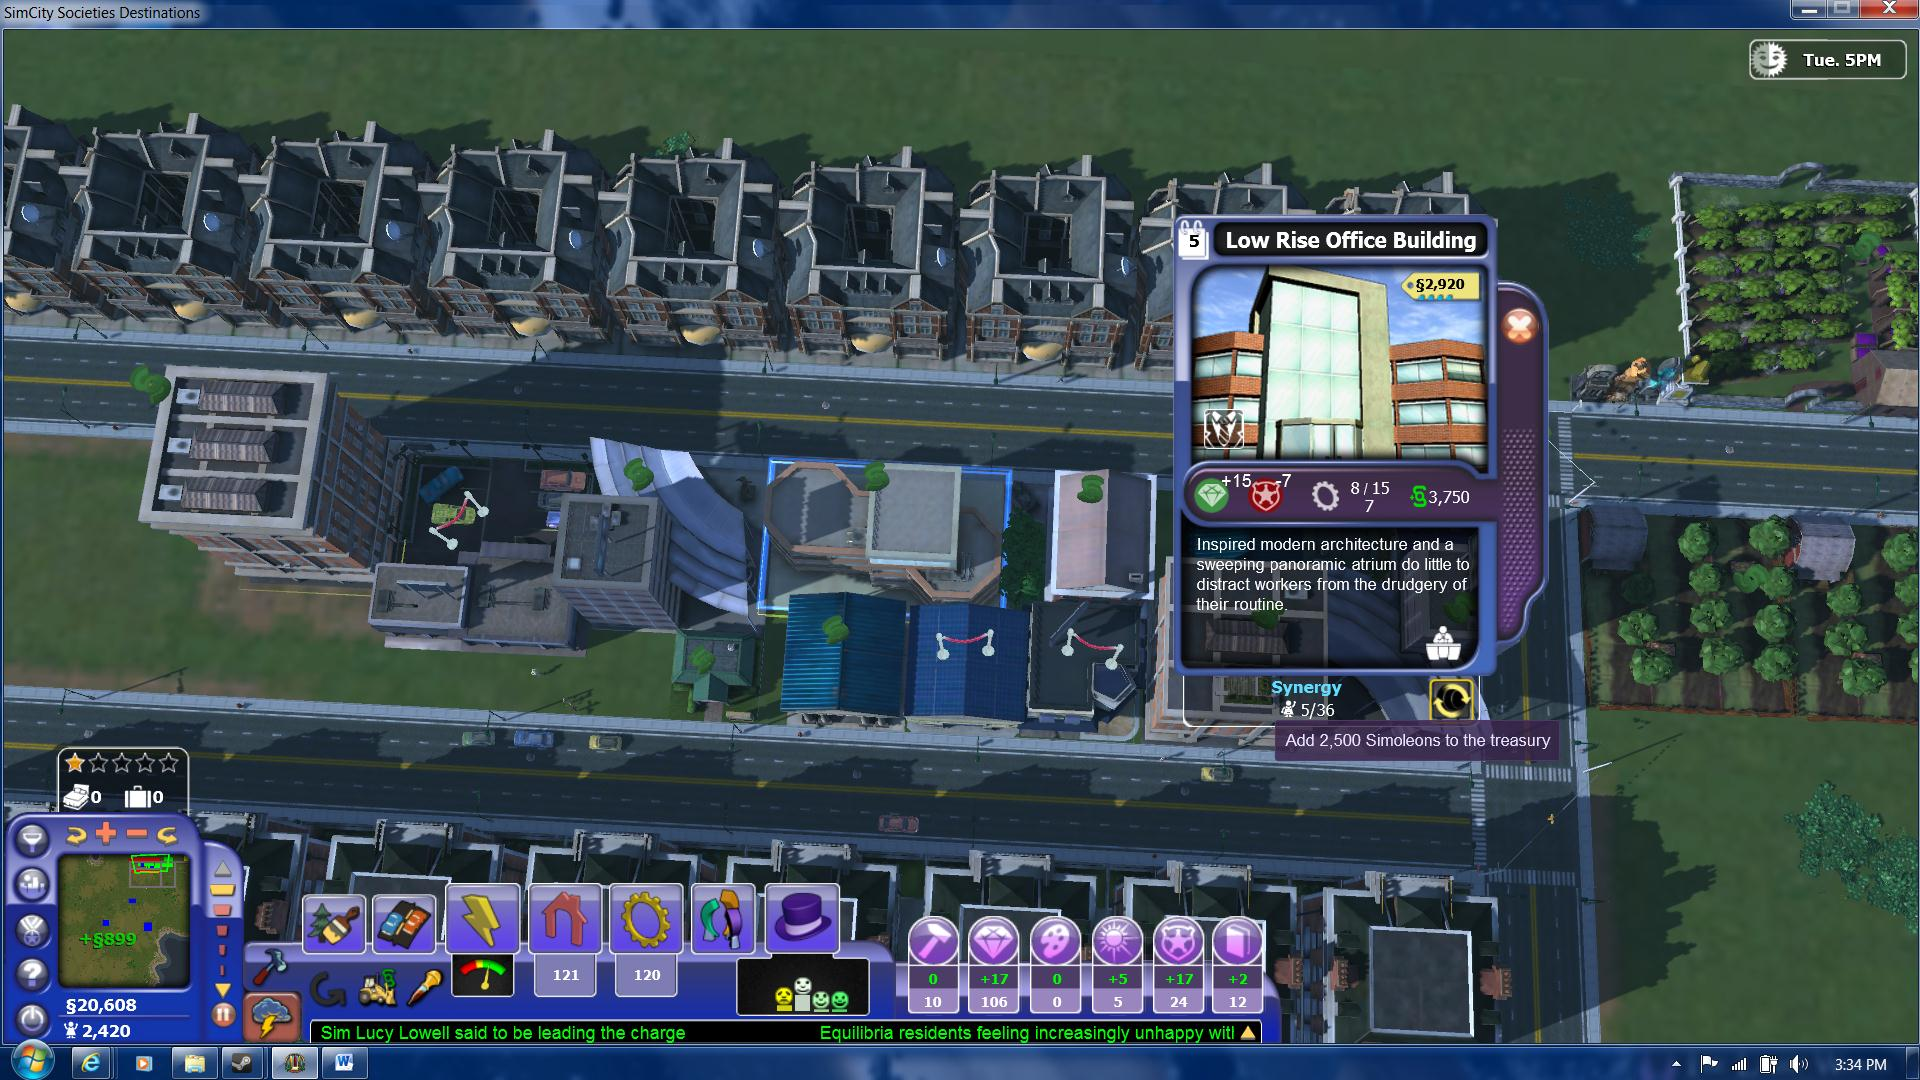 simcity societies & destinations